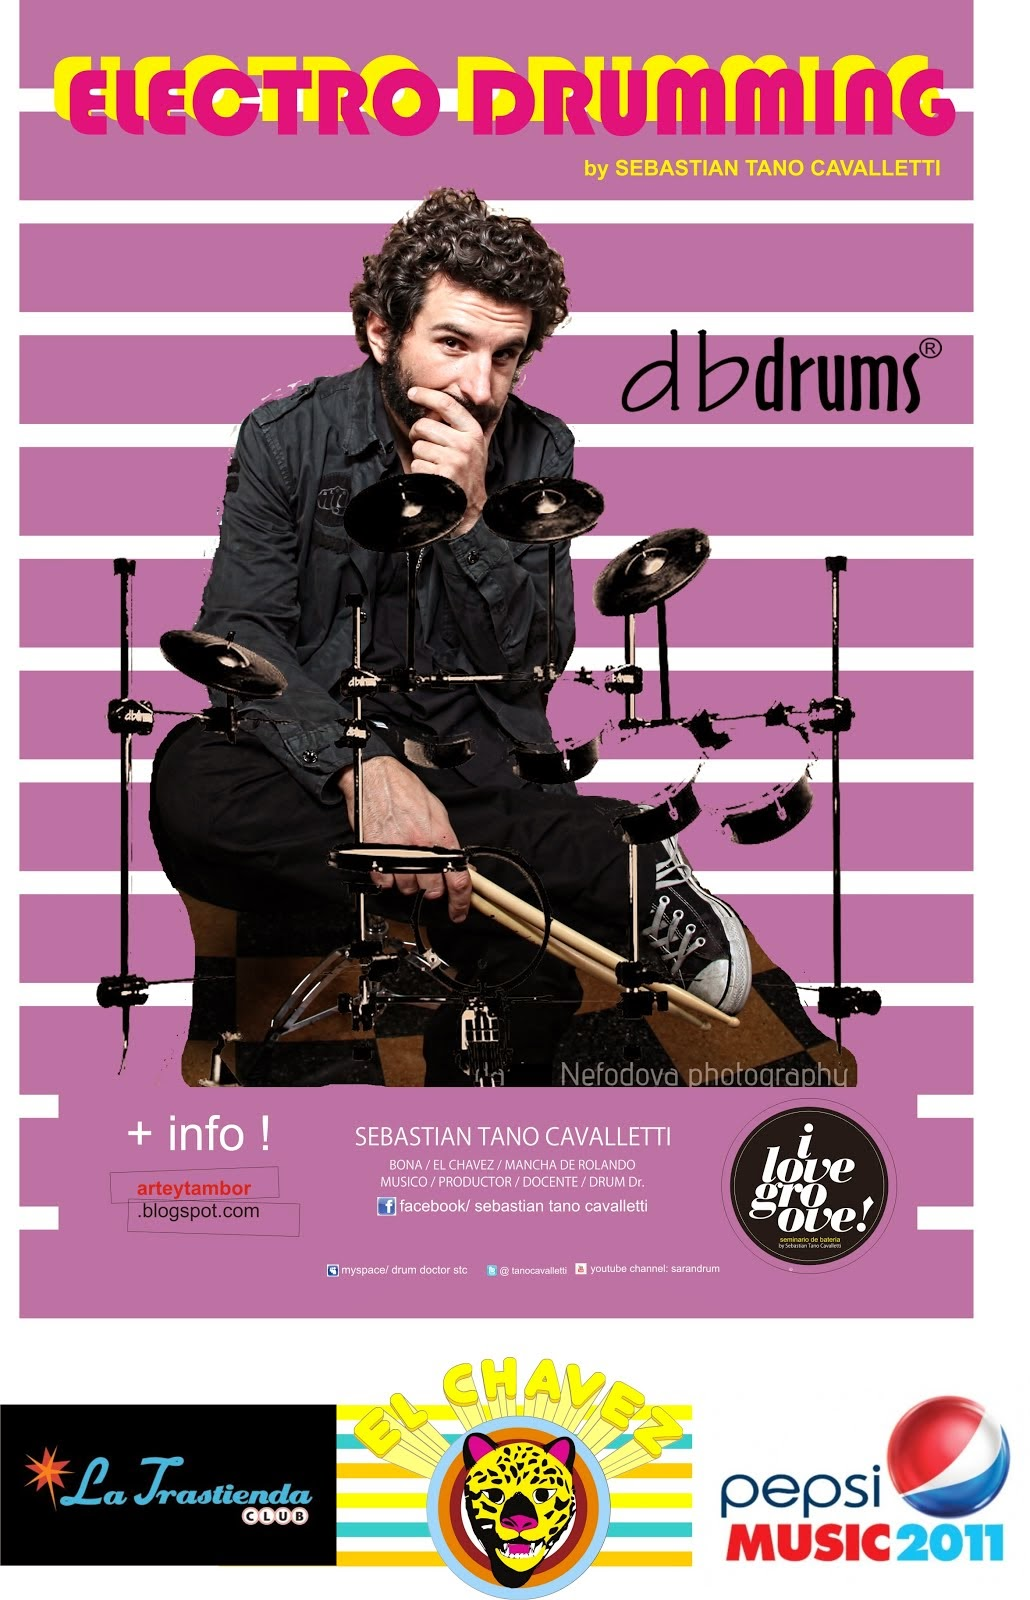 dbdrums ad